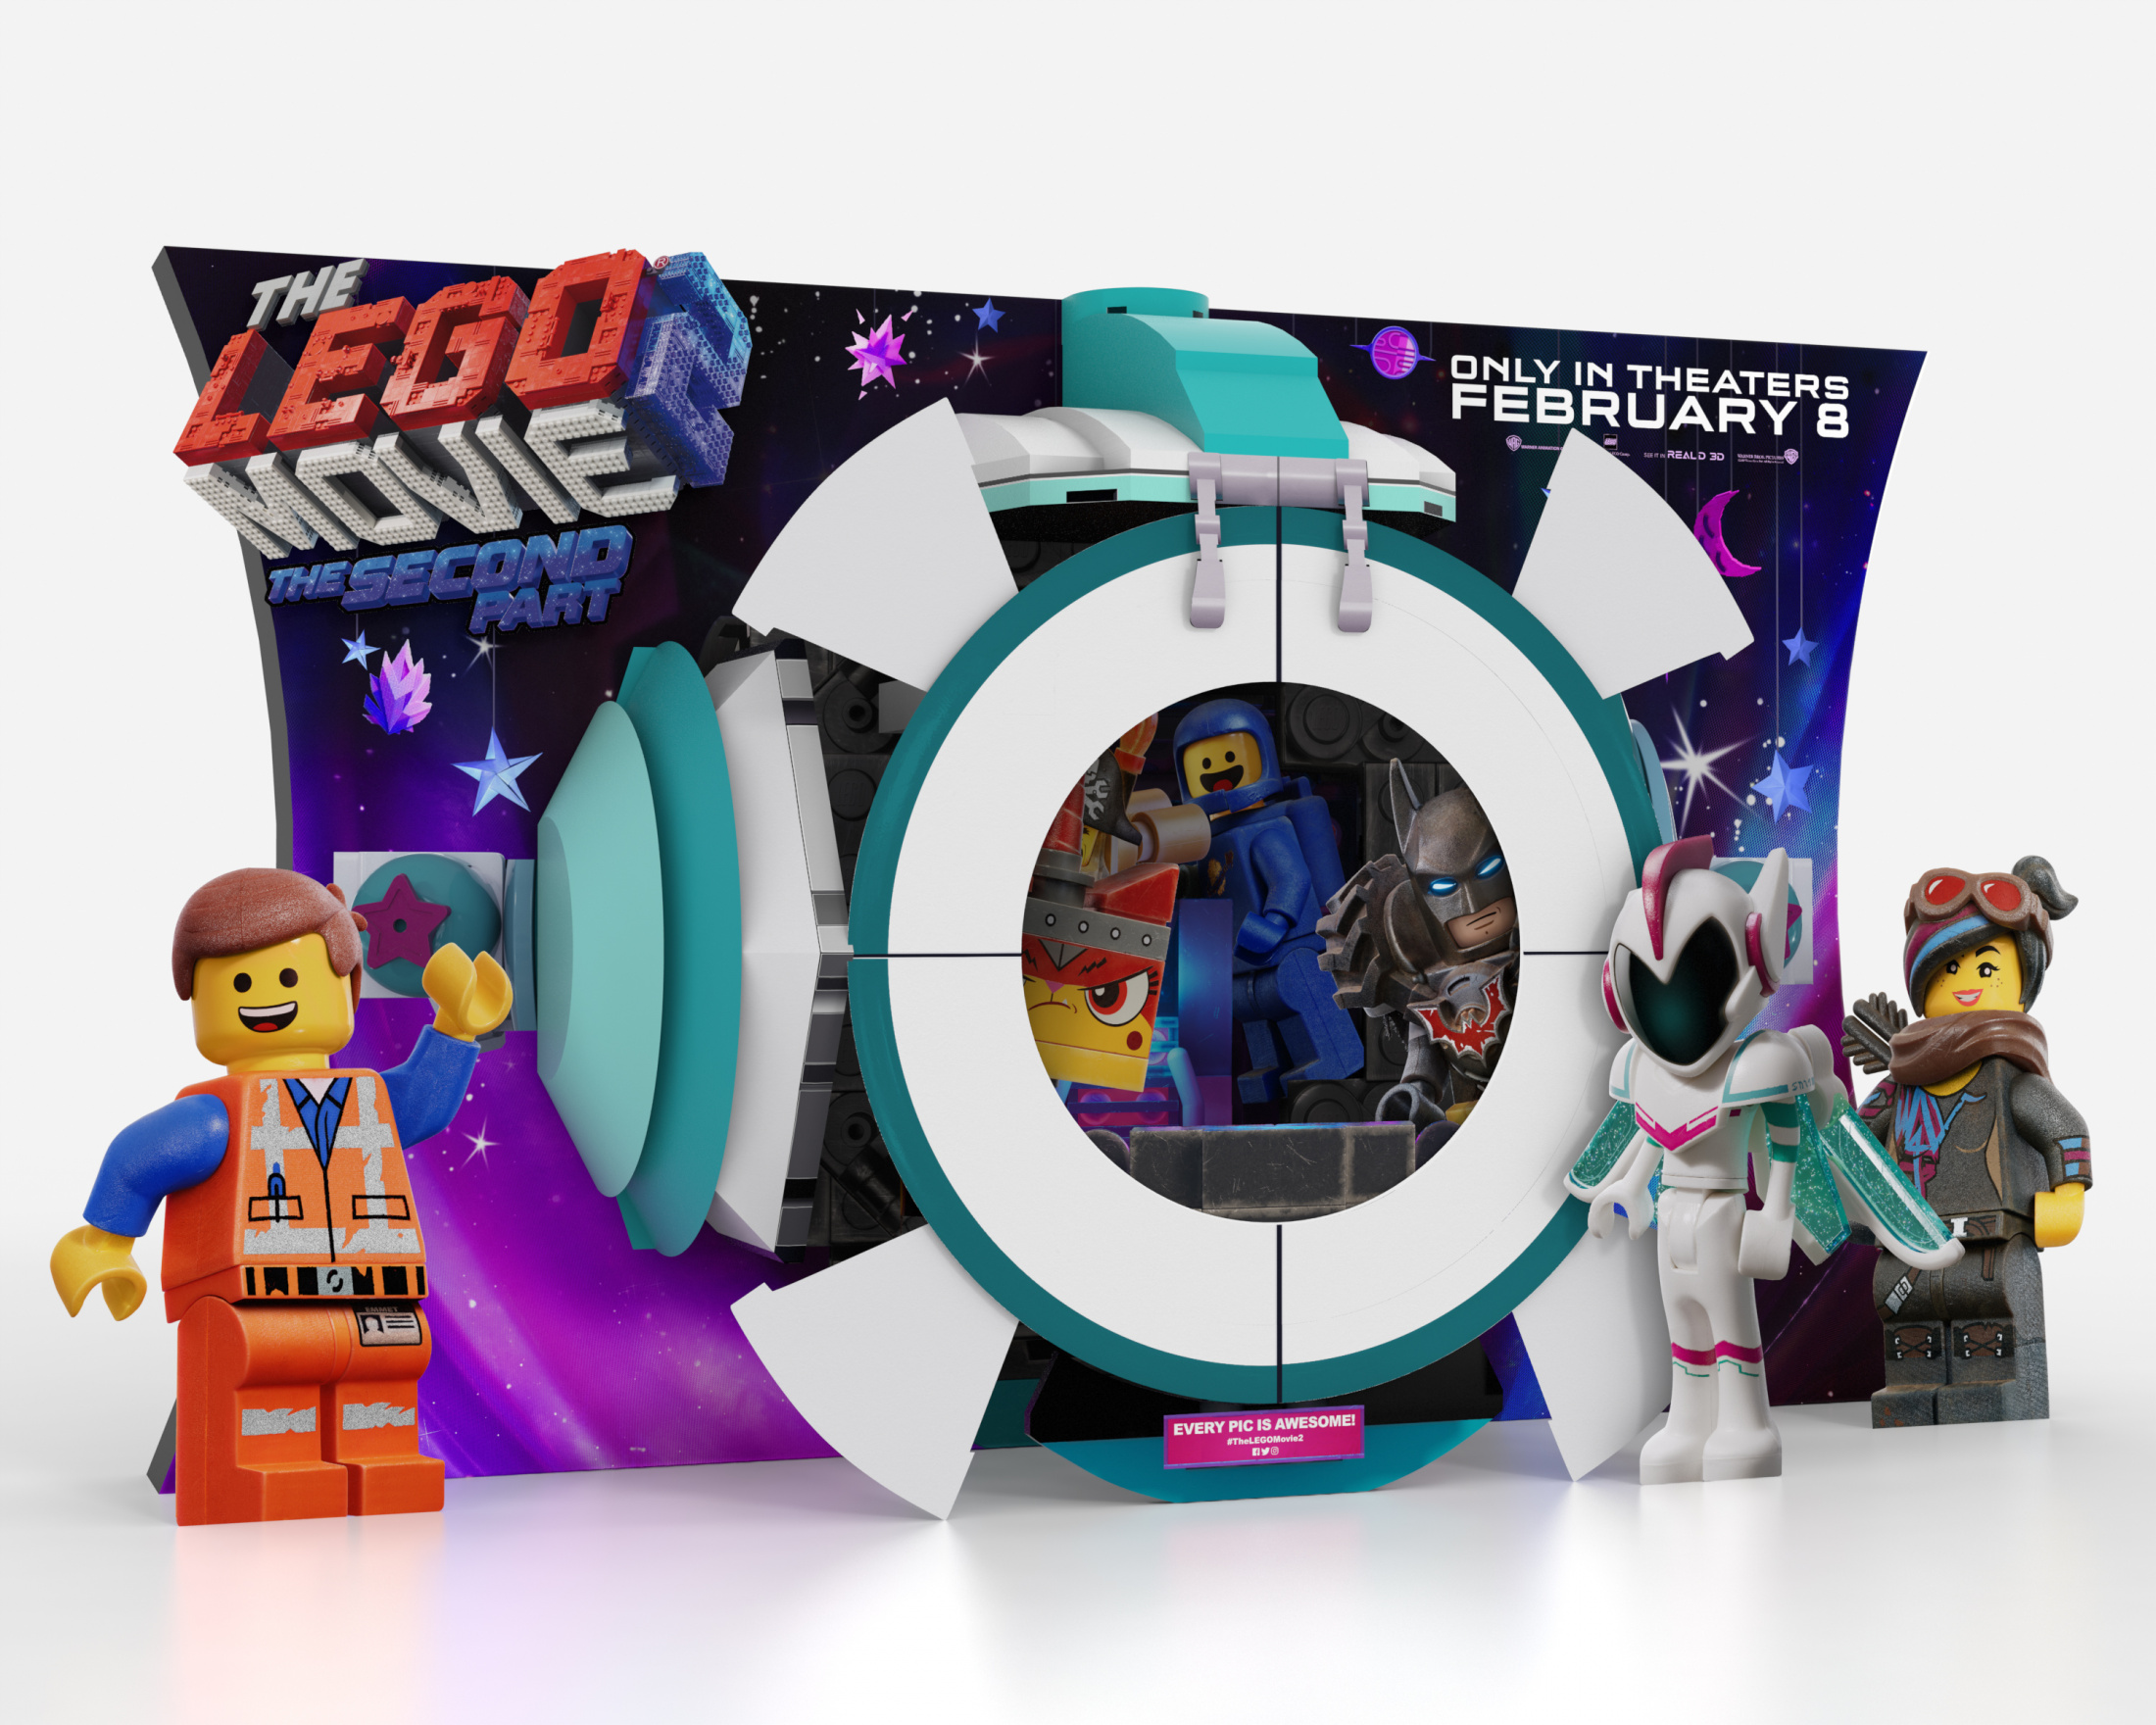 Image Media for The Lego Movie 2: The Second Part In-Theatre Standee